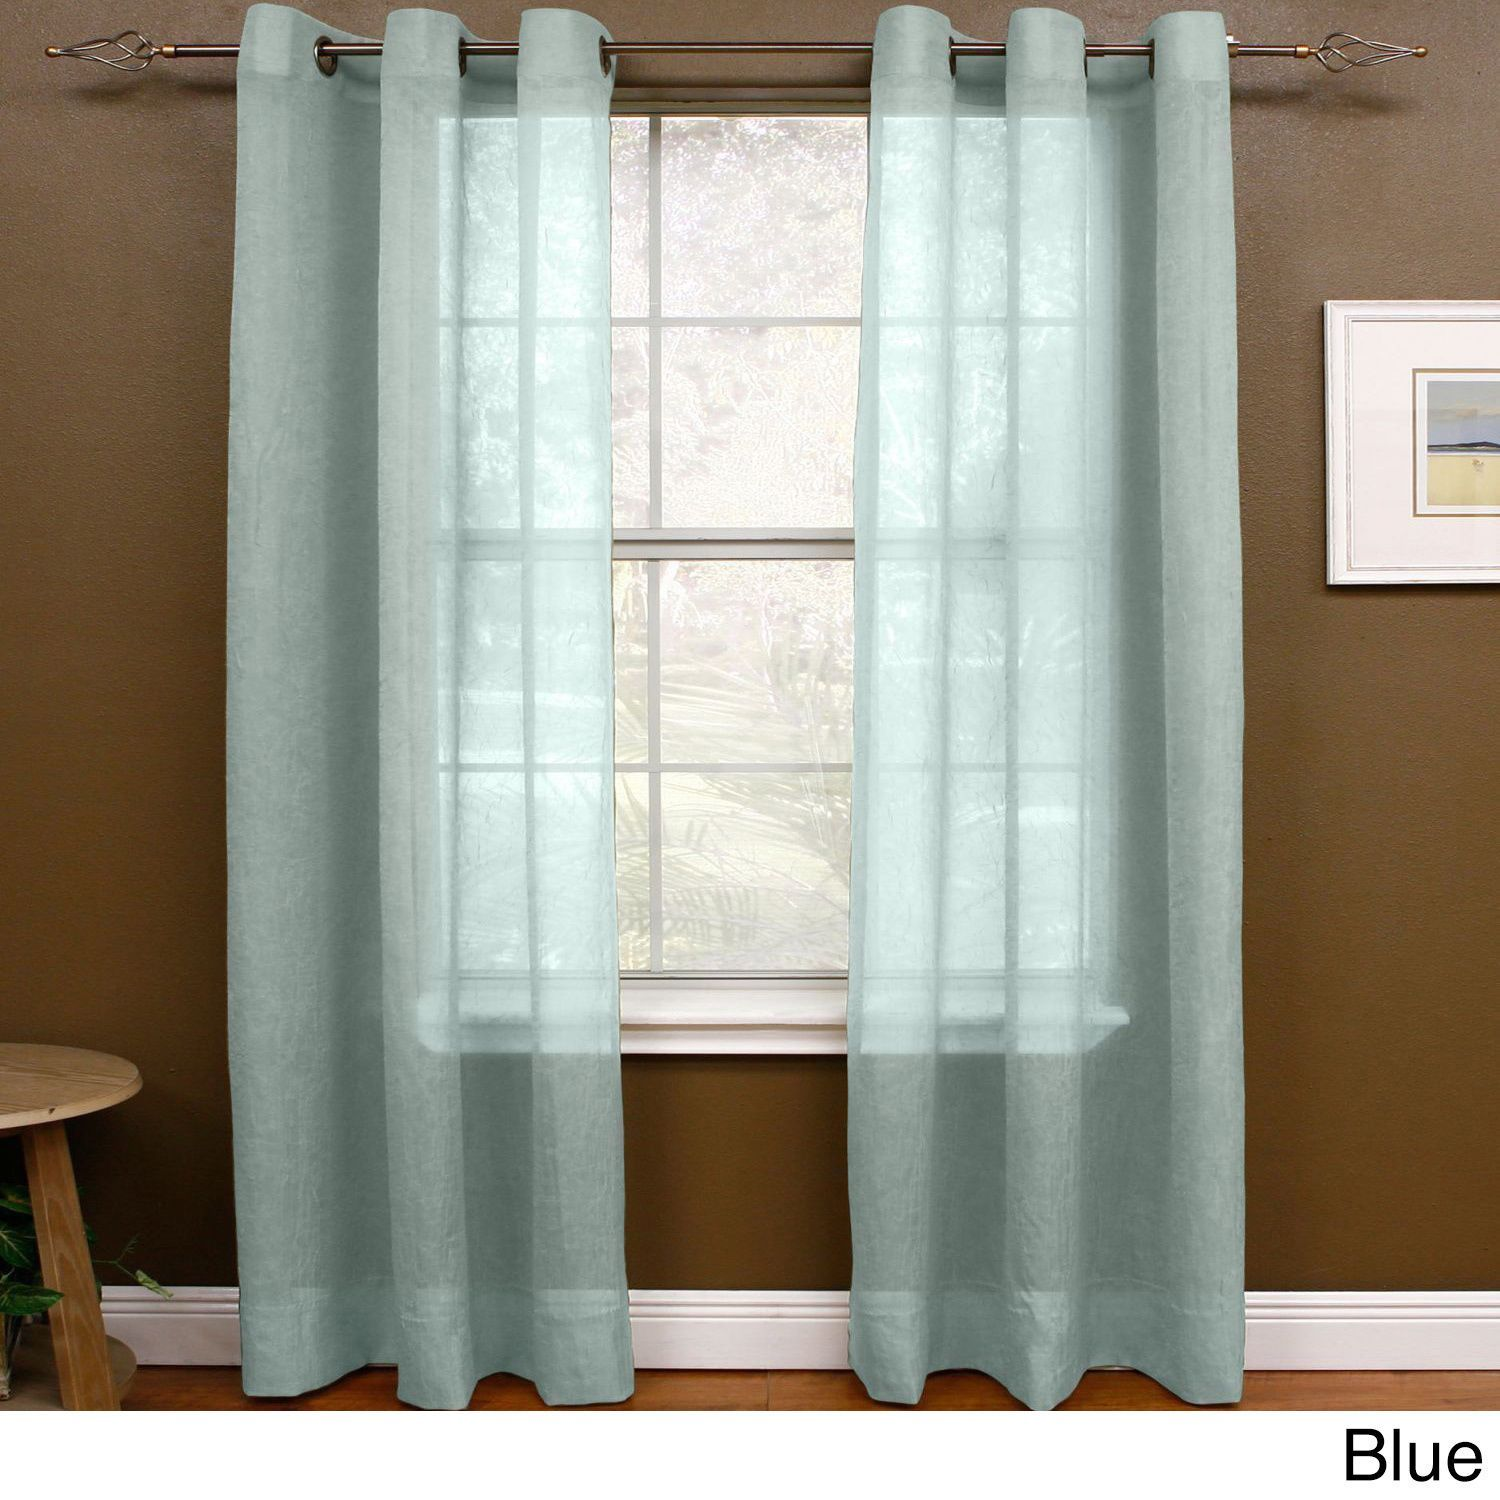 Miller Curtains Preston 63 Inch Grommet Sheer Panel 48 X 63Blue Size Inches Polyester Solid